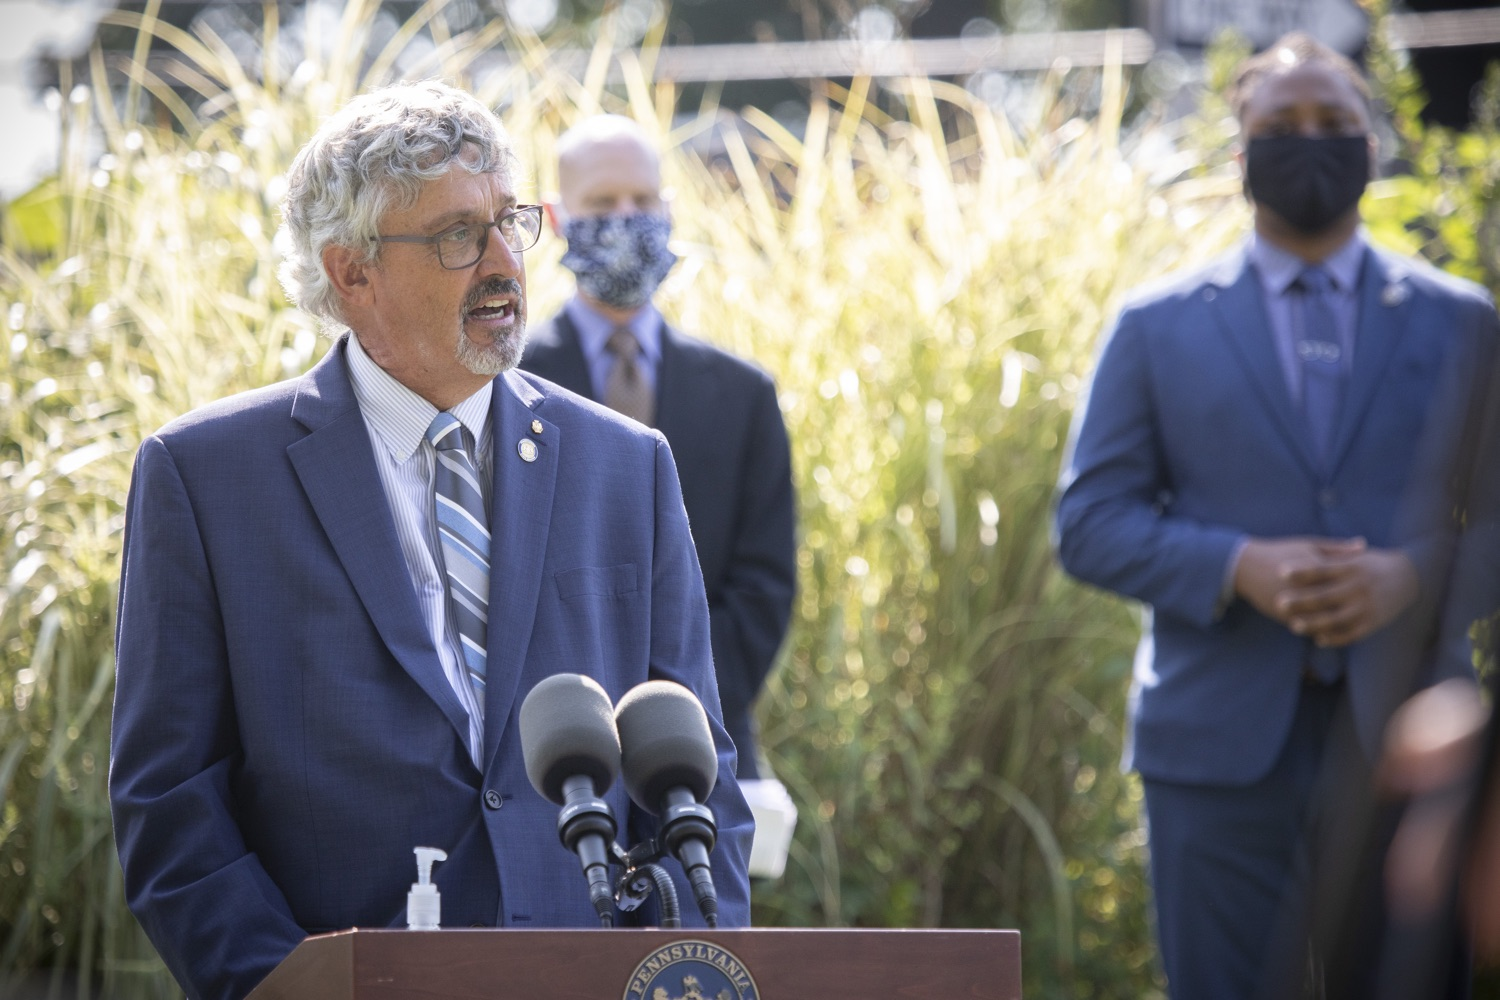 "<a href=""https://filesource.wostreaming.net/commonwealthofpa/photo/18248_gov_evictions_dz_040.jpg"" target=""_blank"">⇣ Download Photo<br></a>Pennsylvania Senator Tim Kearney speaking to the press.  With rent and mortgage debt mounting for hundreds of thousands of Pennsylvanians, Governor Tom Wolf is calling on the General Assembly to fix a state relief program to prevent many families from becoming homeless and enact a moratorium on evictions and foreclosures until the end of the year. The governor was joined today by legislators and housing advocates at a press conference in Lancaster County. Harrisburg, PA  Sept. 8, 2020"